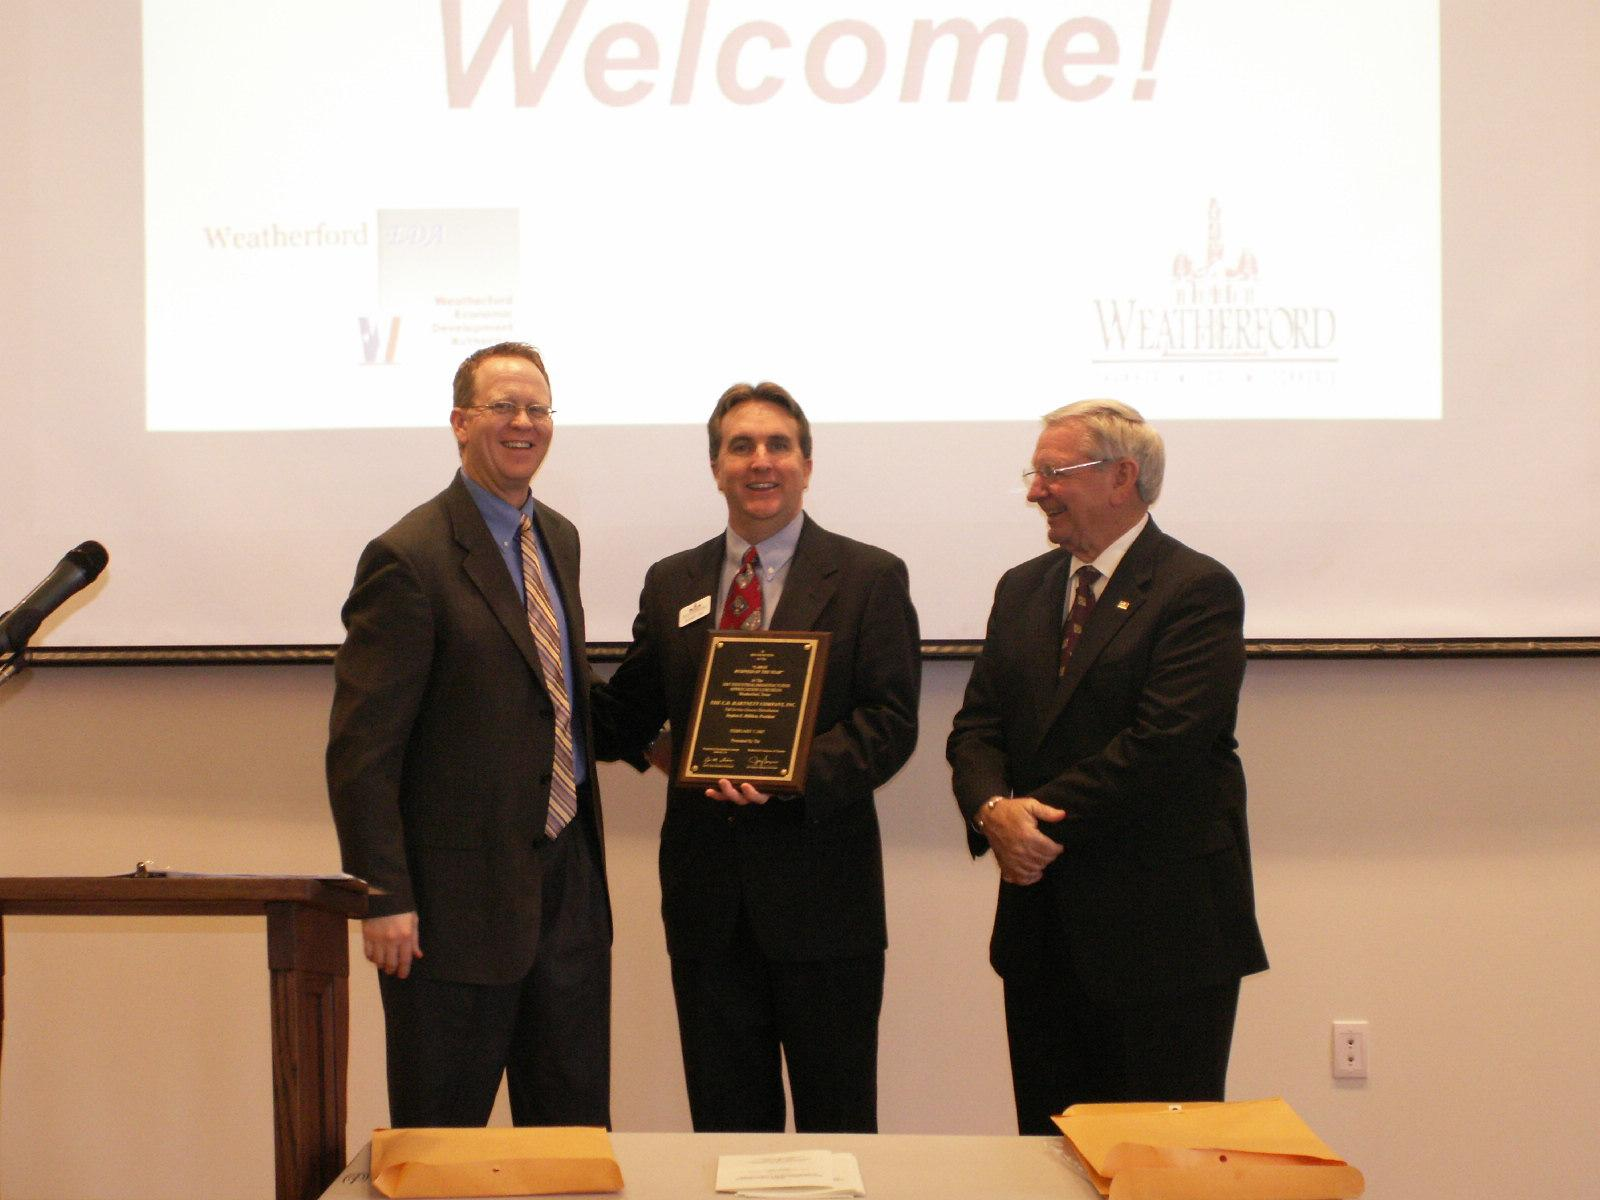 Large Business of the Year Recipient, Stephen E. Milliken